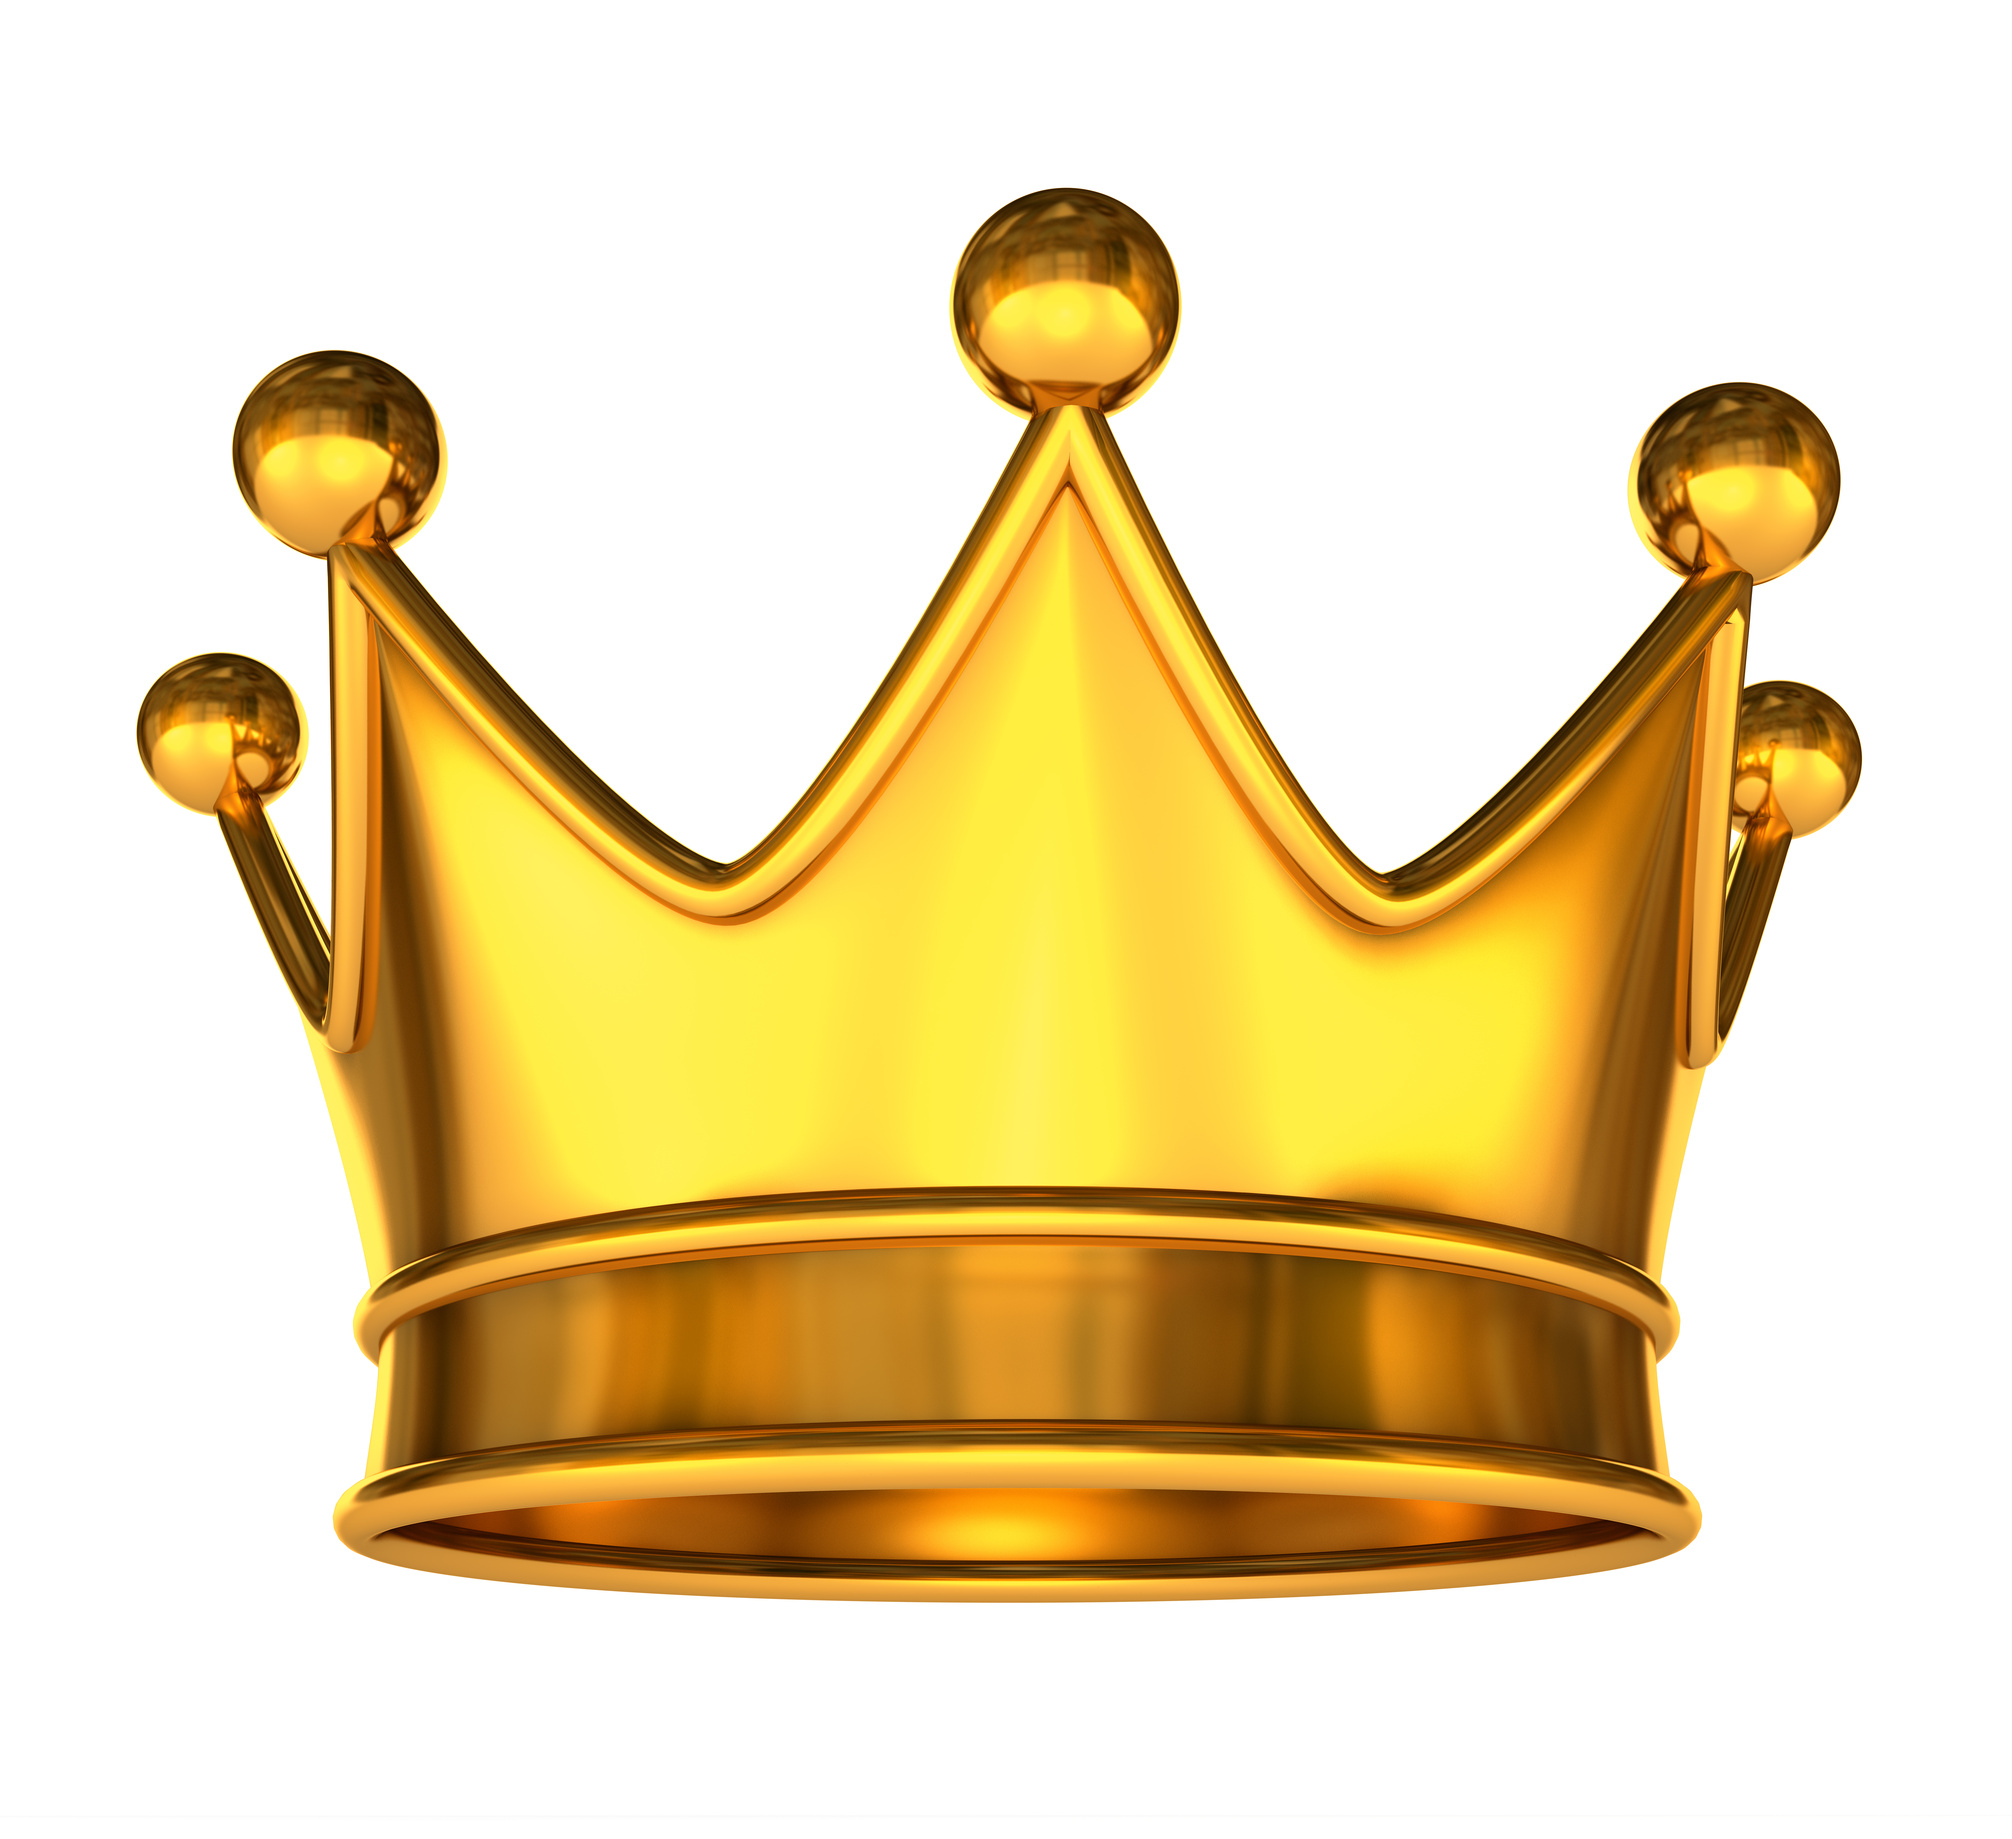 2012x1839 Crown Free Download Clip Art Free Clip Art On Clipart Library